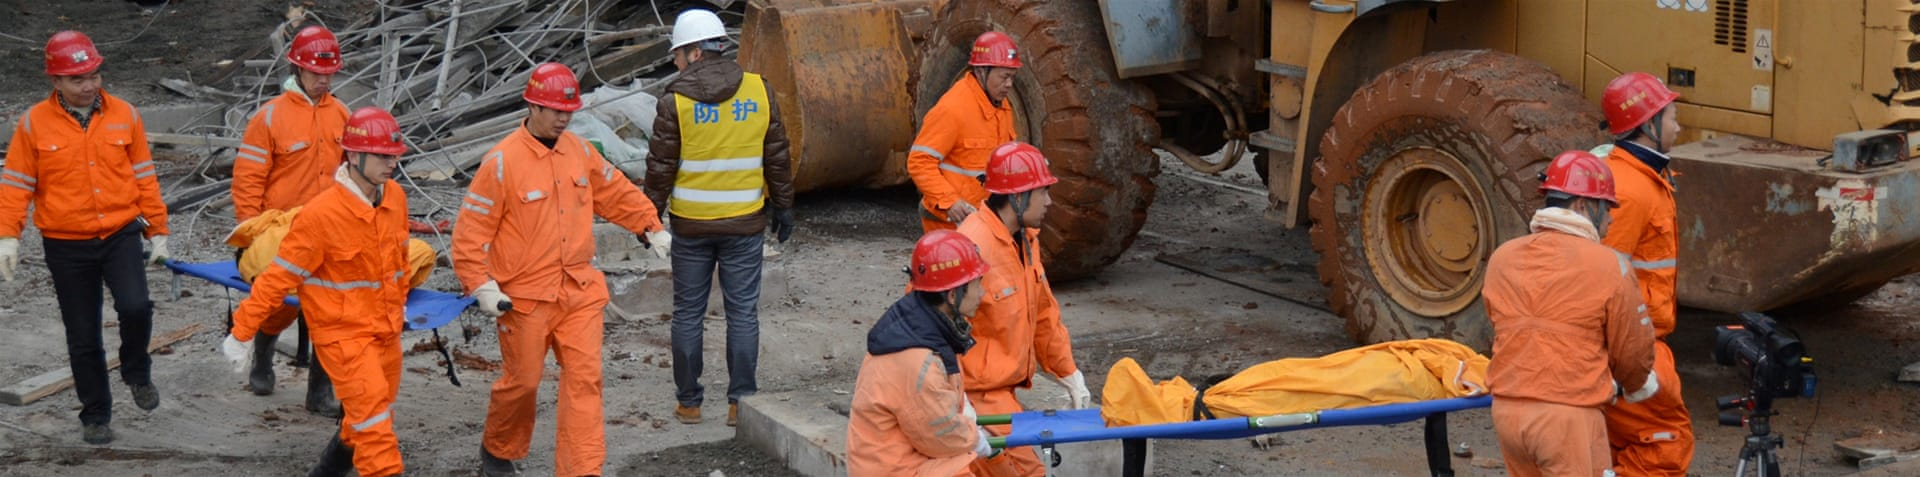 The enforcement of industrial safety standards is often lax in China [Reuters]